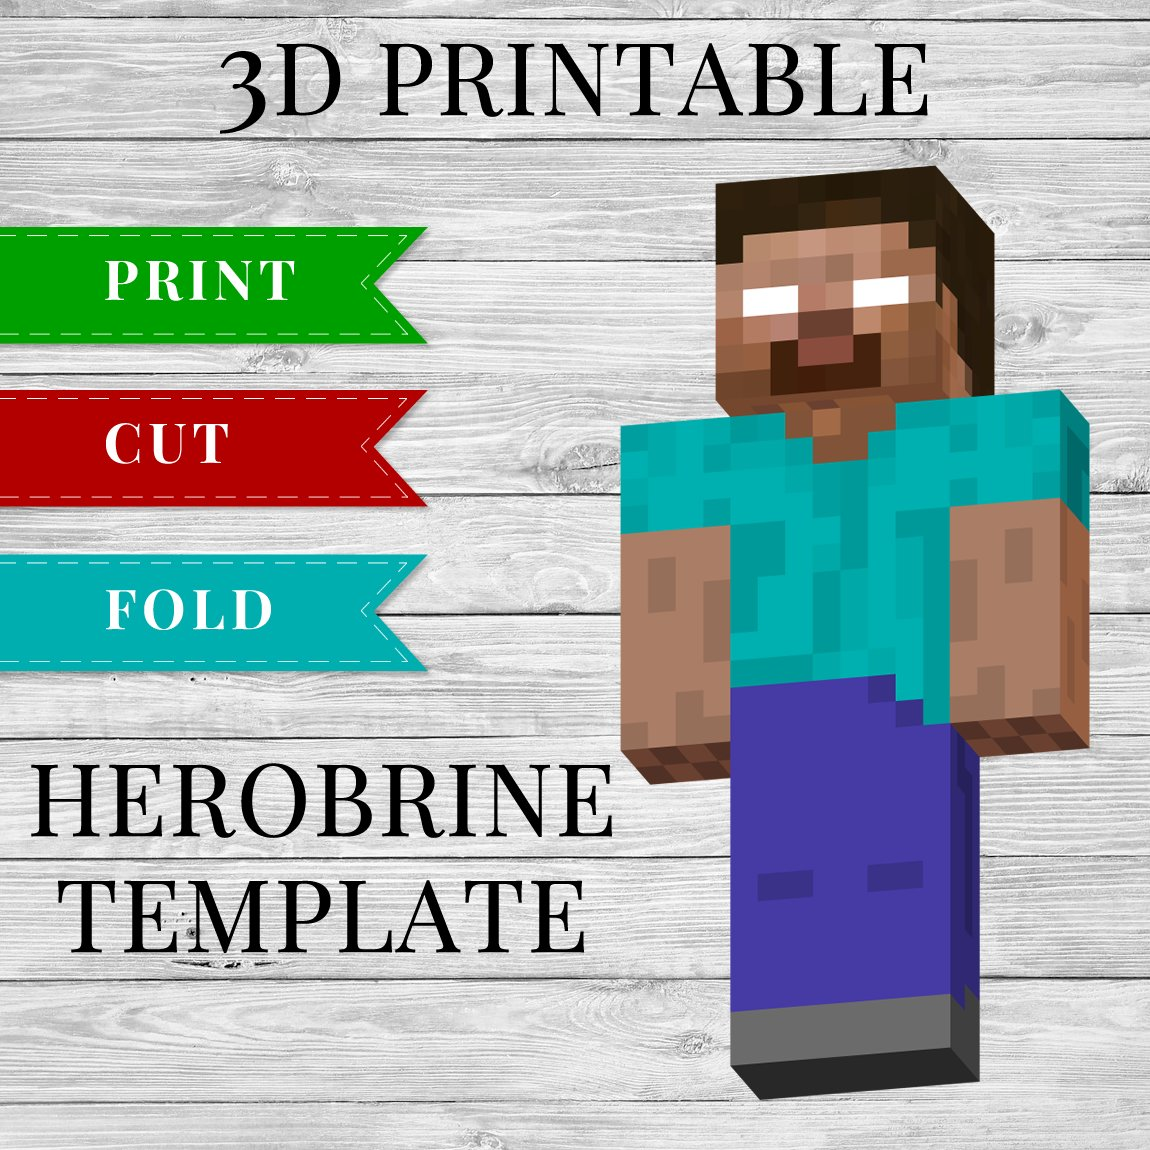 photo relating to Printable Minecraft Images named 3D Printable Minecraft Herobrine Template